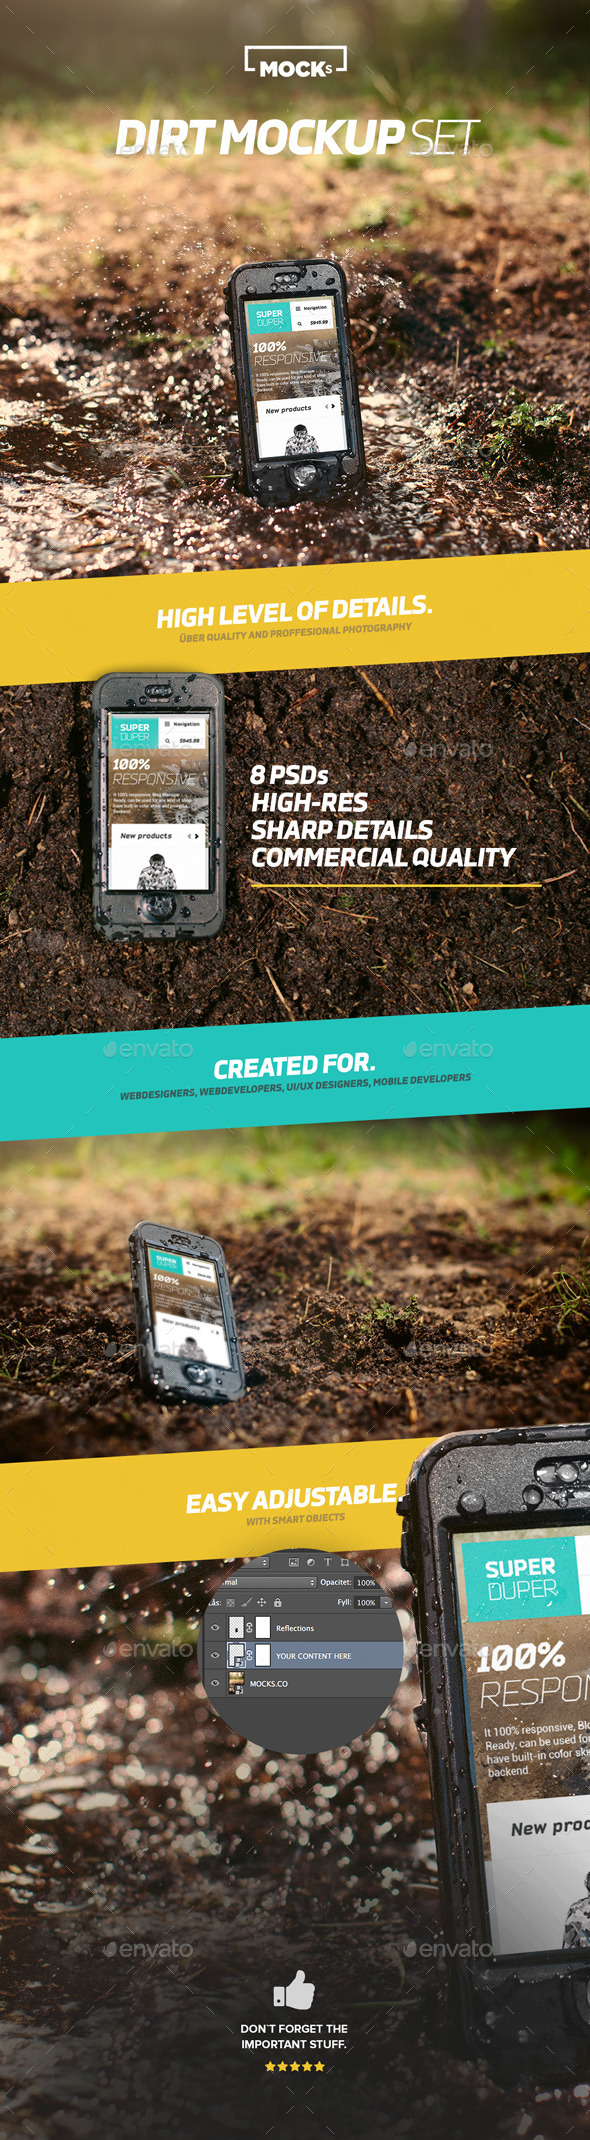 Phone Dirt Mockup Set - Mobile Displays